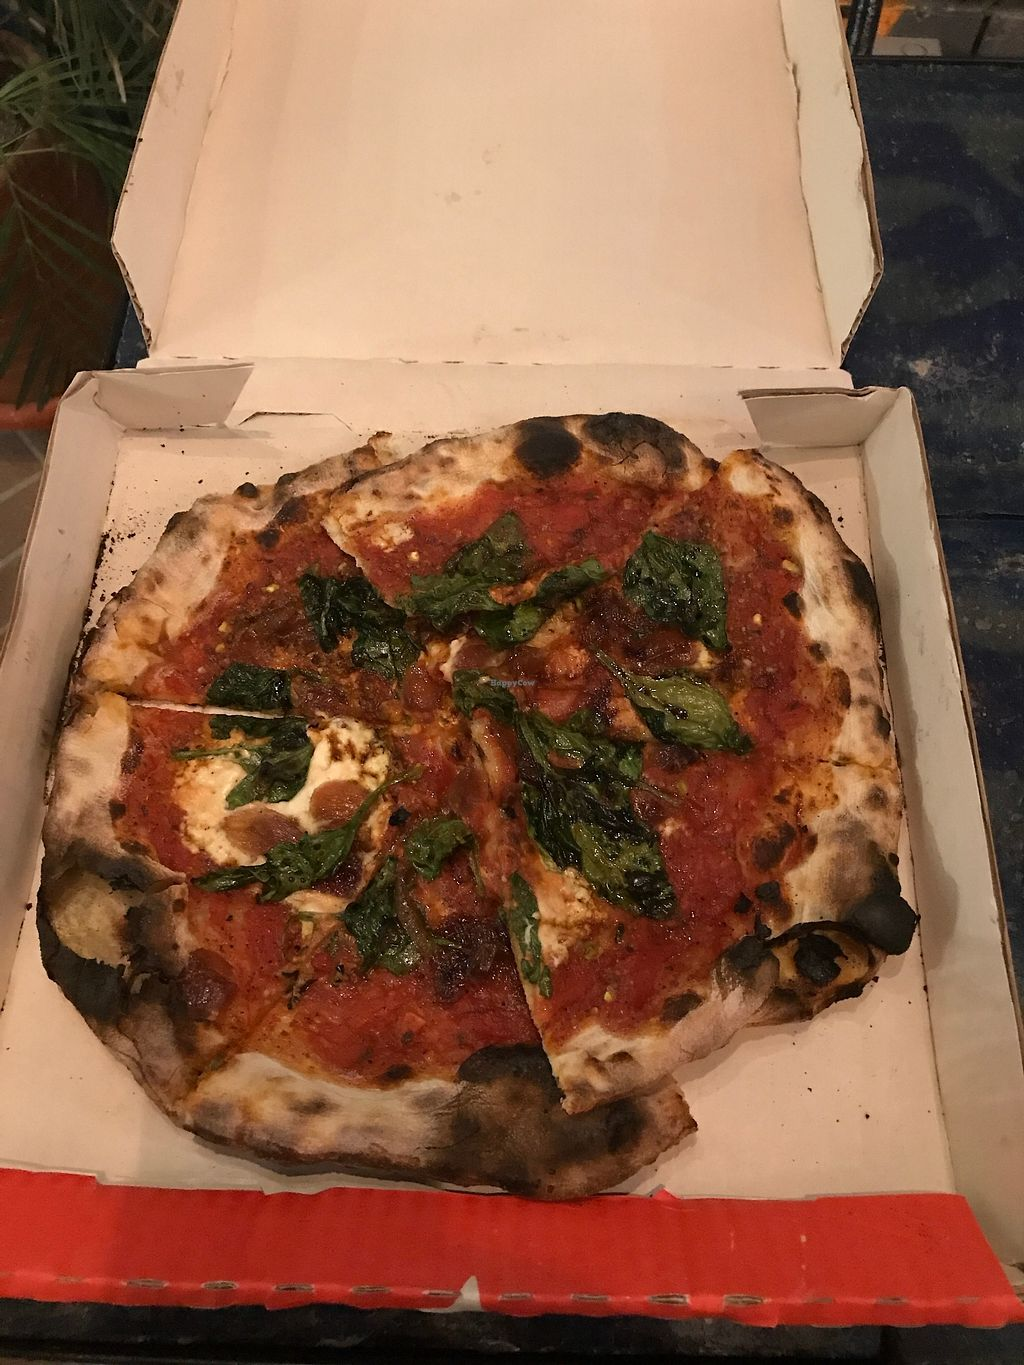 "Photo of Cafe Zorba  by <a href=""/members/profile/daydreamer4life"">daydreamer4life</a> <br/>Espinaca pizza with vegan cheese made from macademia <br/> February 5, 2018  - <a href='/contact/abuse/image/40226/355115'>Report</a>"